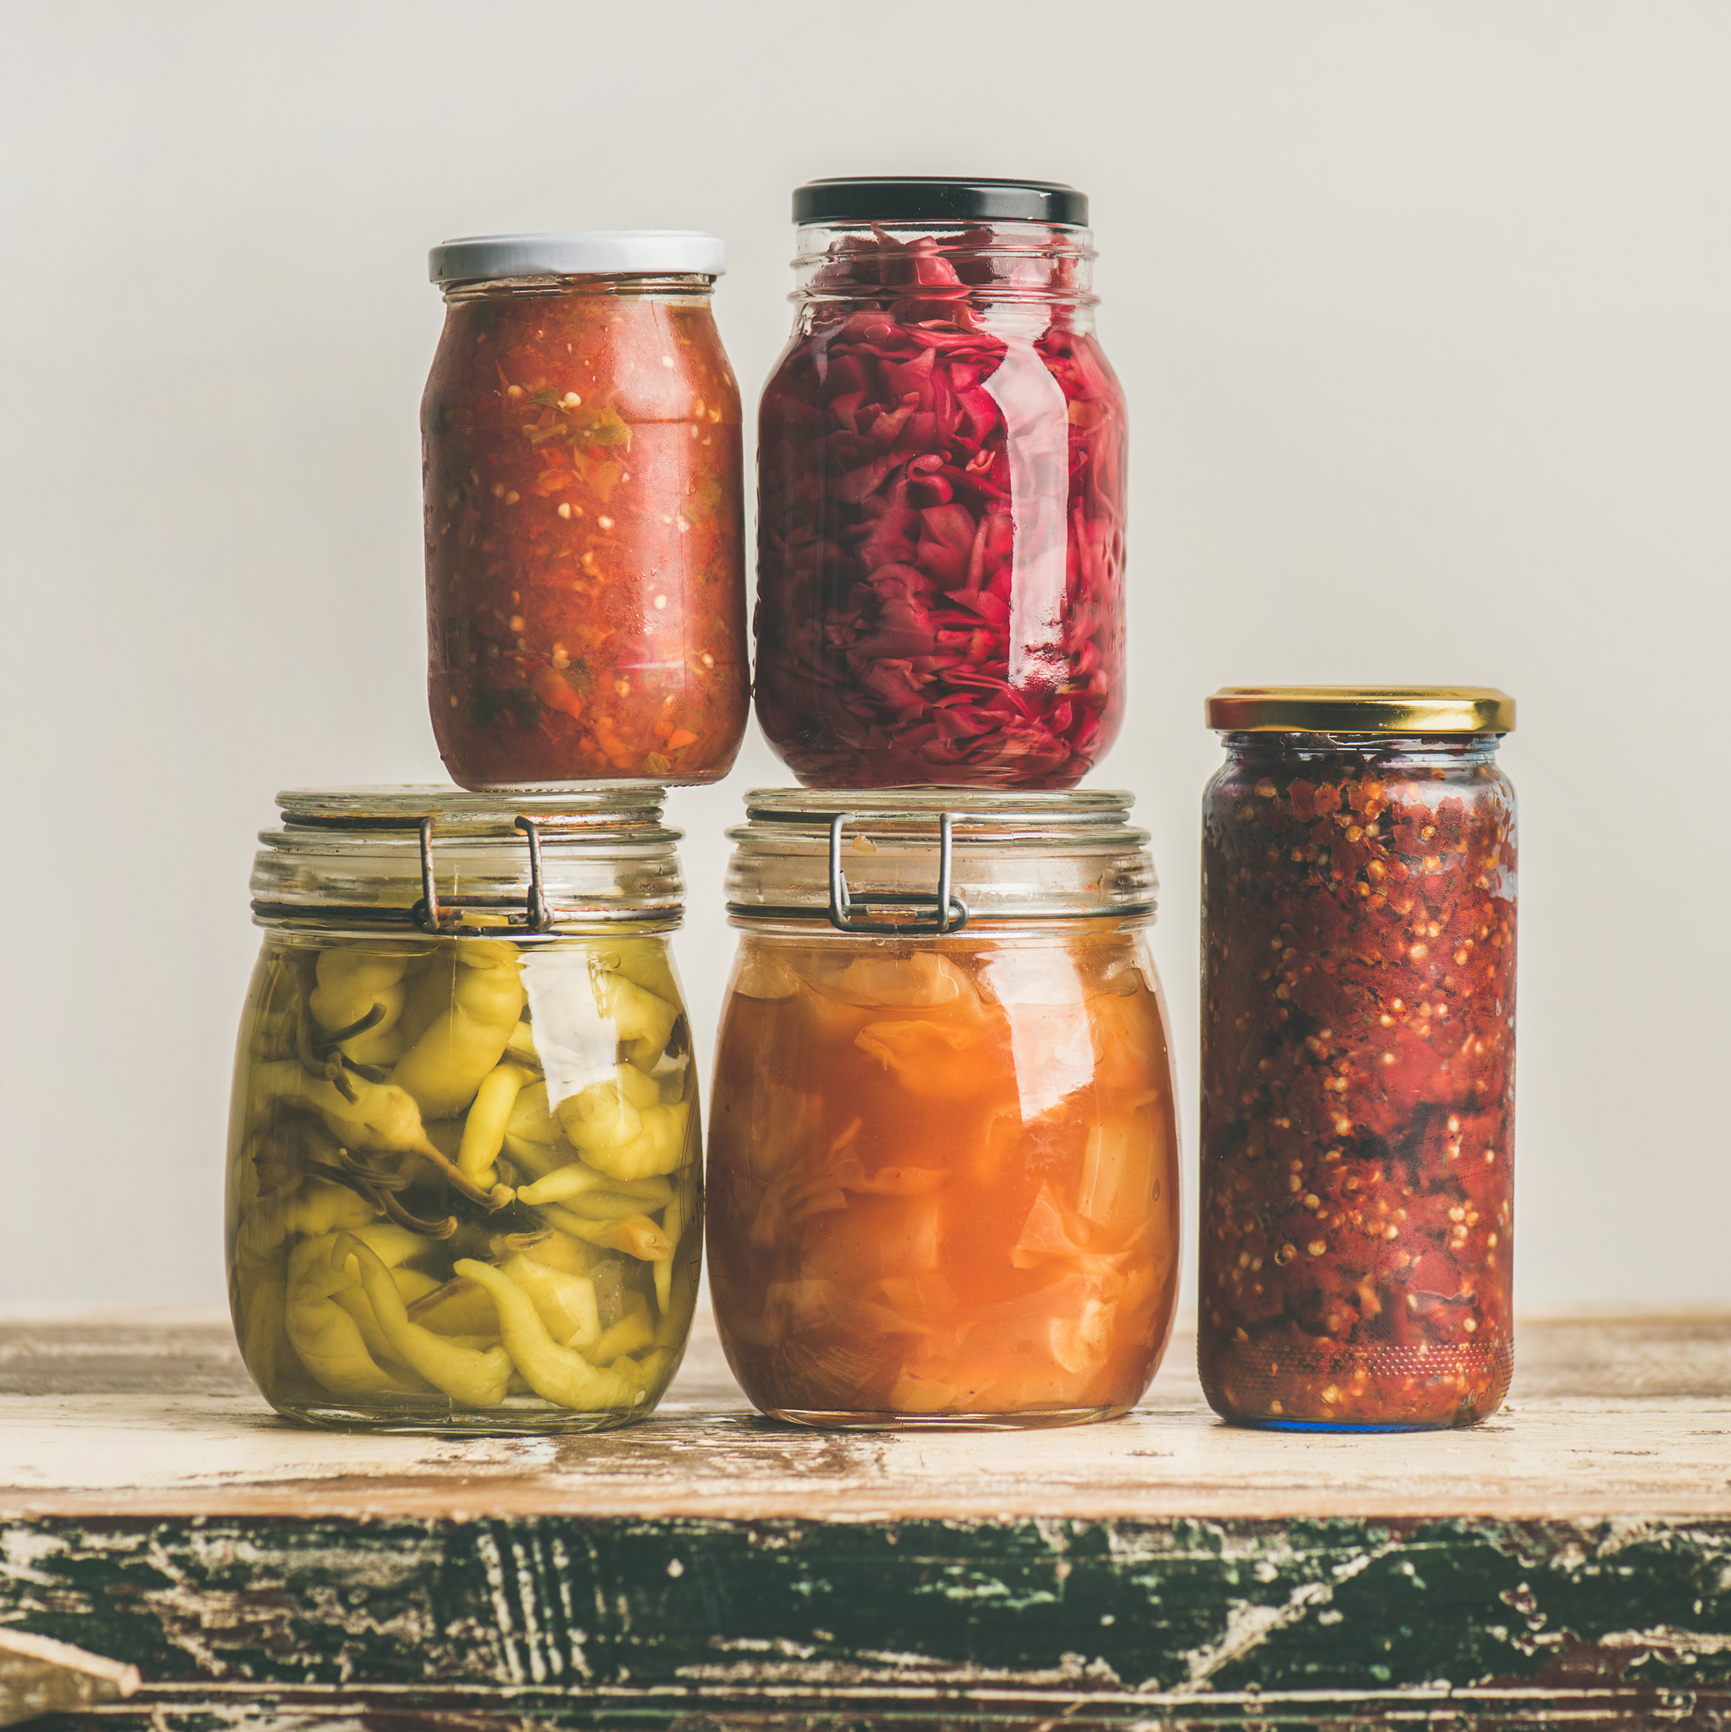 Fermented foods for better gut health - Harvard Health Blog